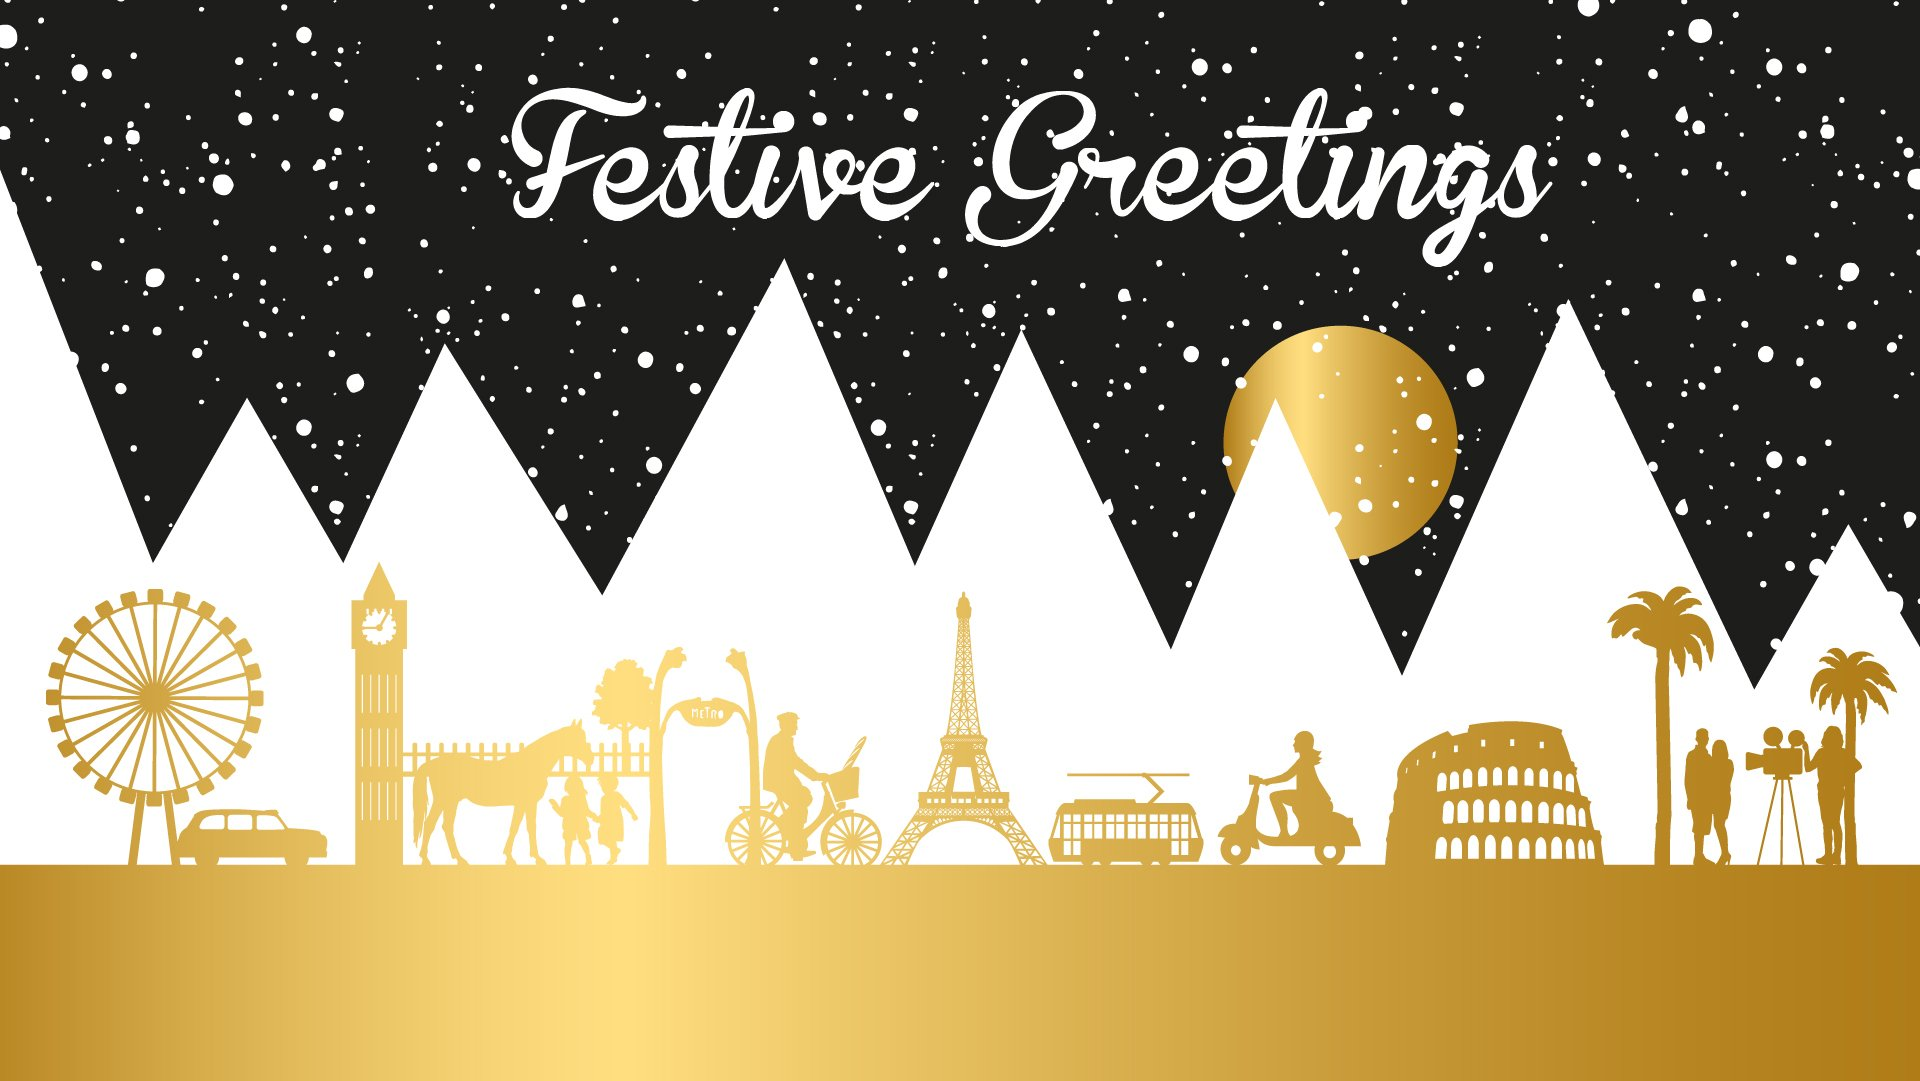 Black, white and gold festive greetings banner